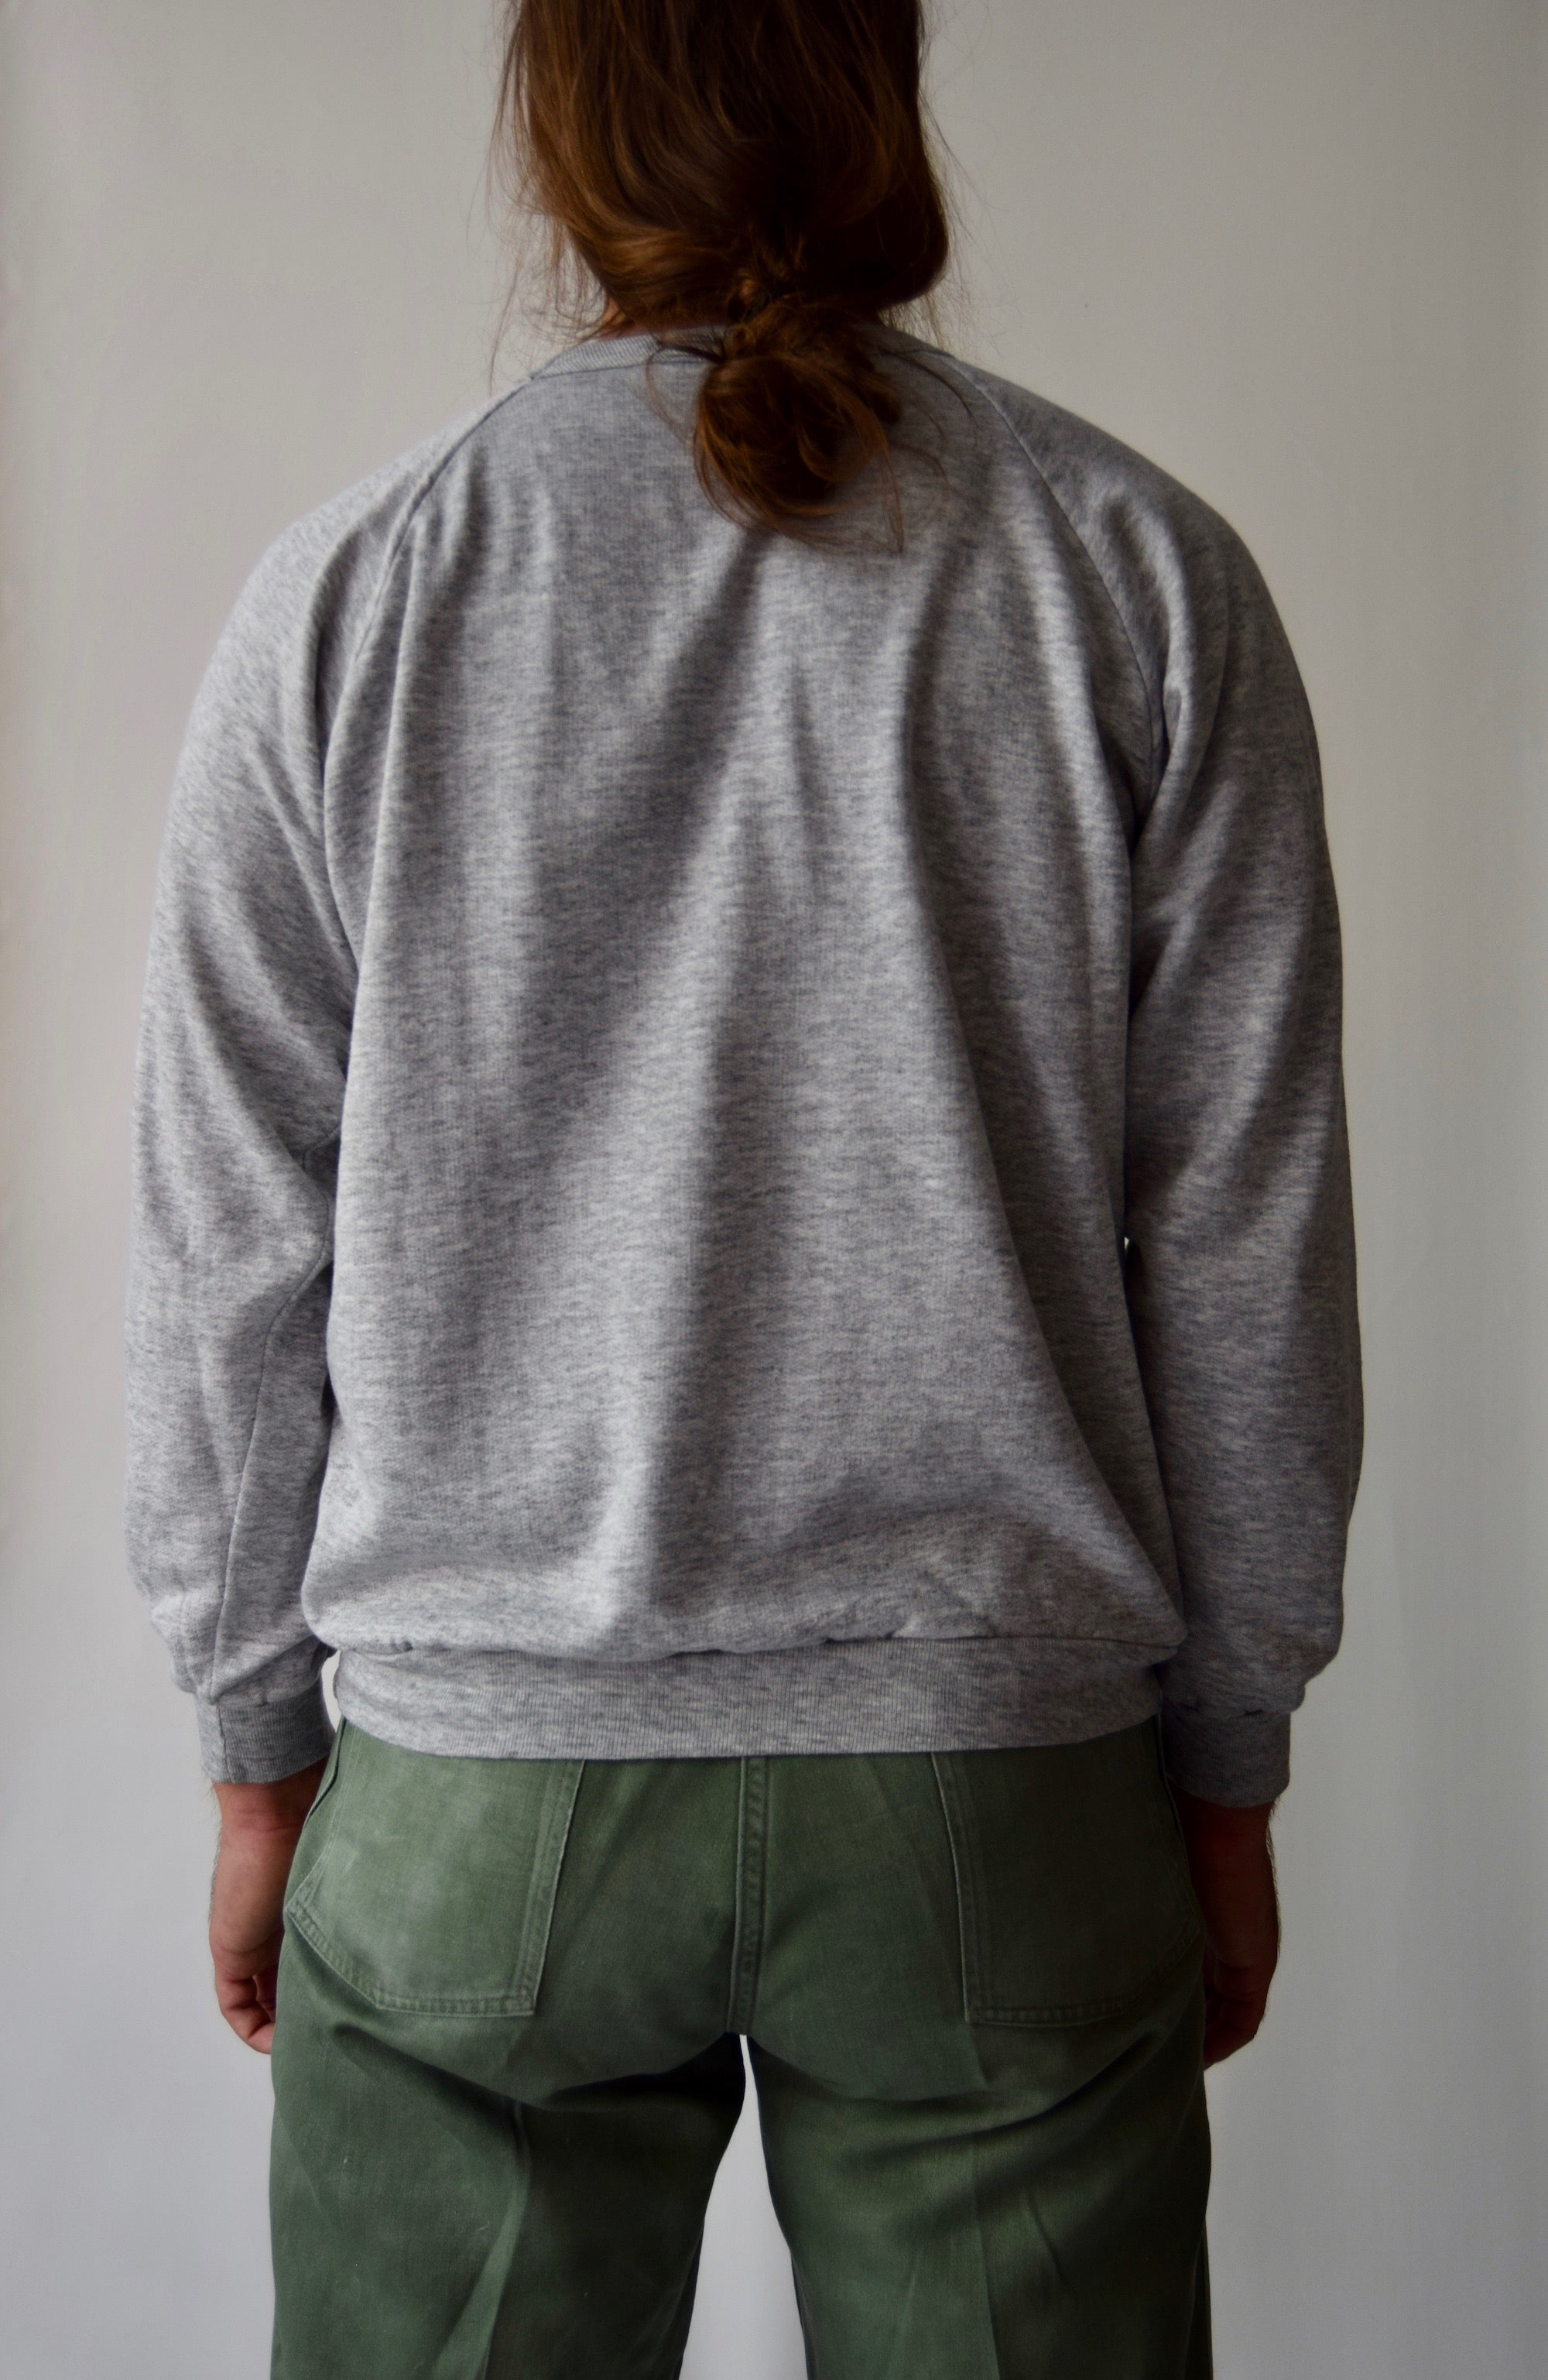 The PERFECT Vintage 50/50 Heather Grey Sweatshirt FREE SHIPPING TO THE U.S.